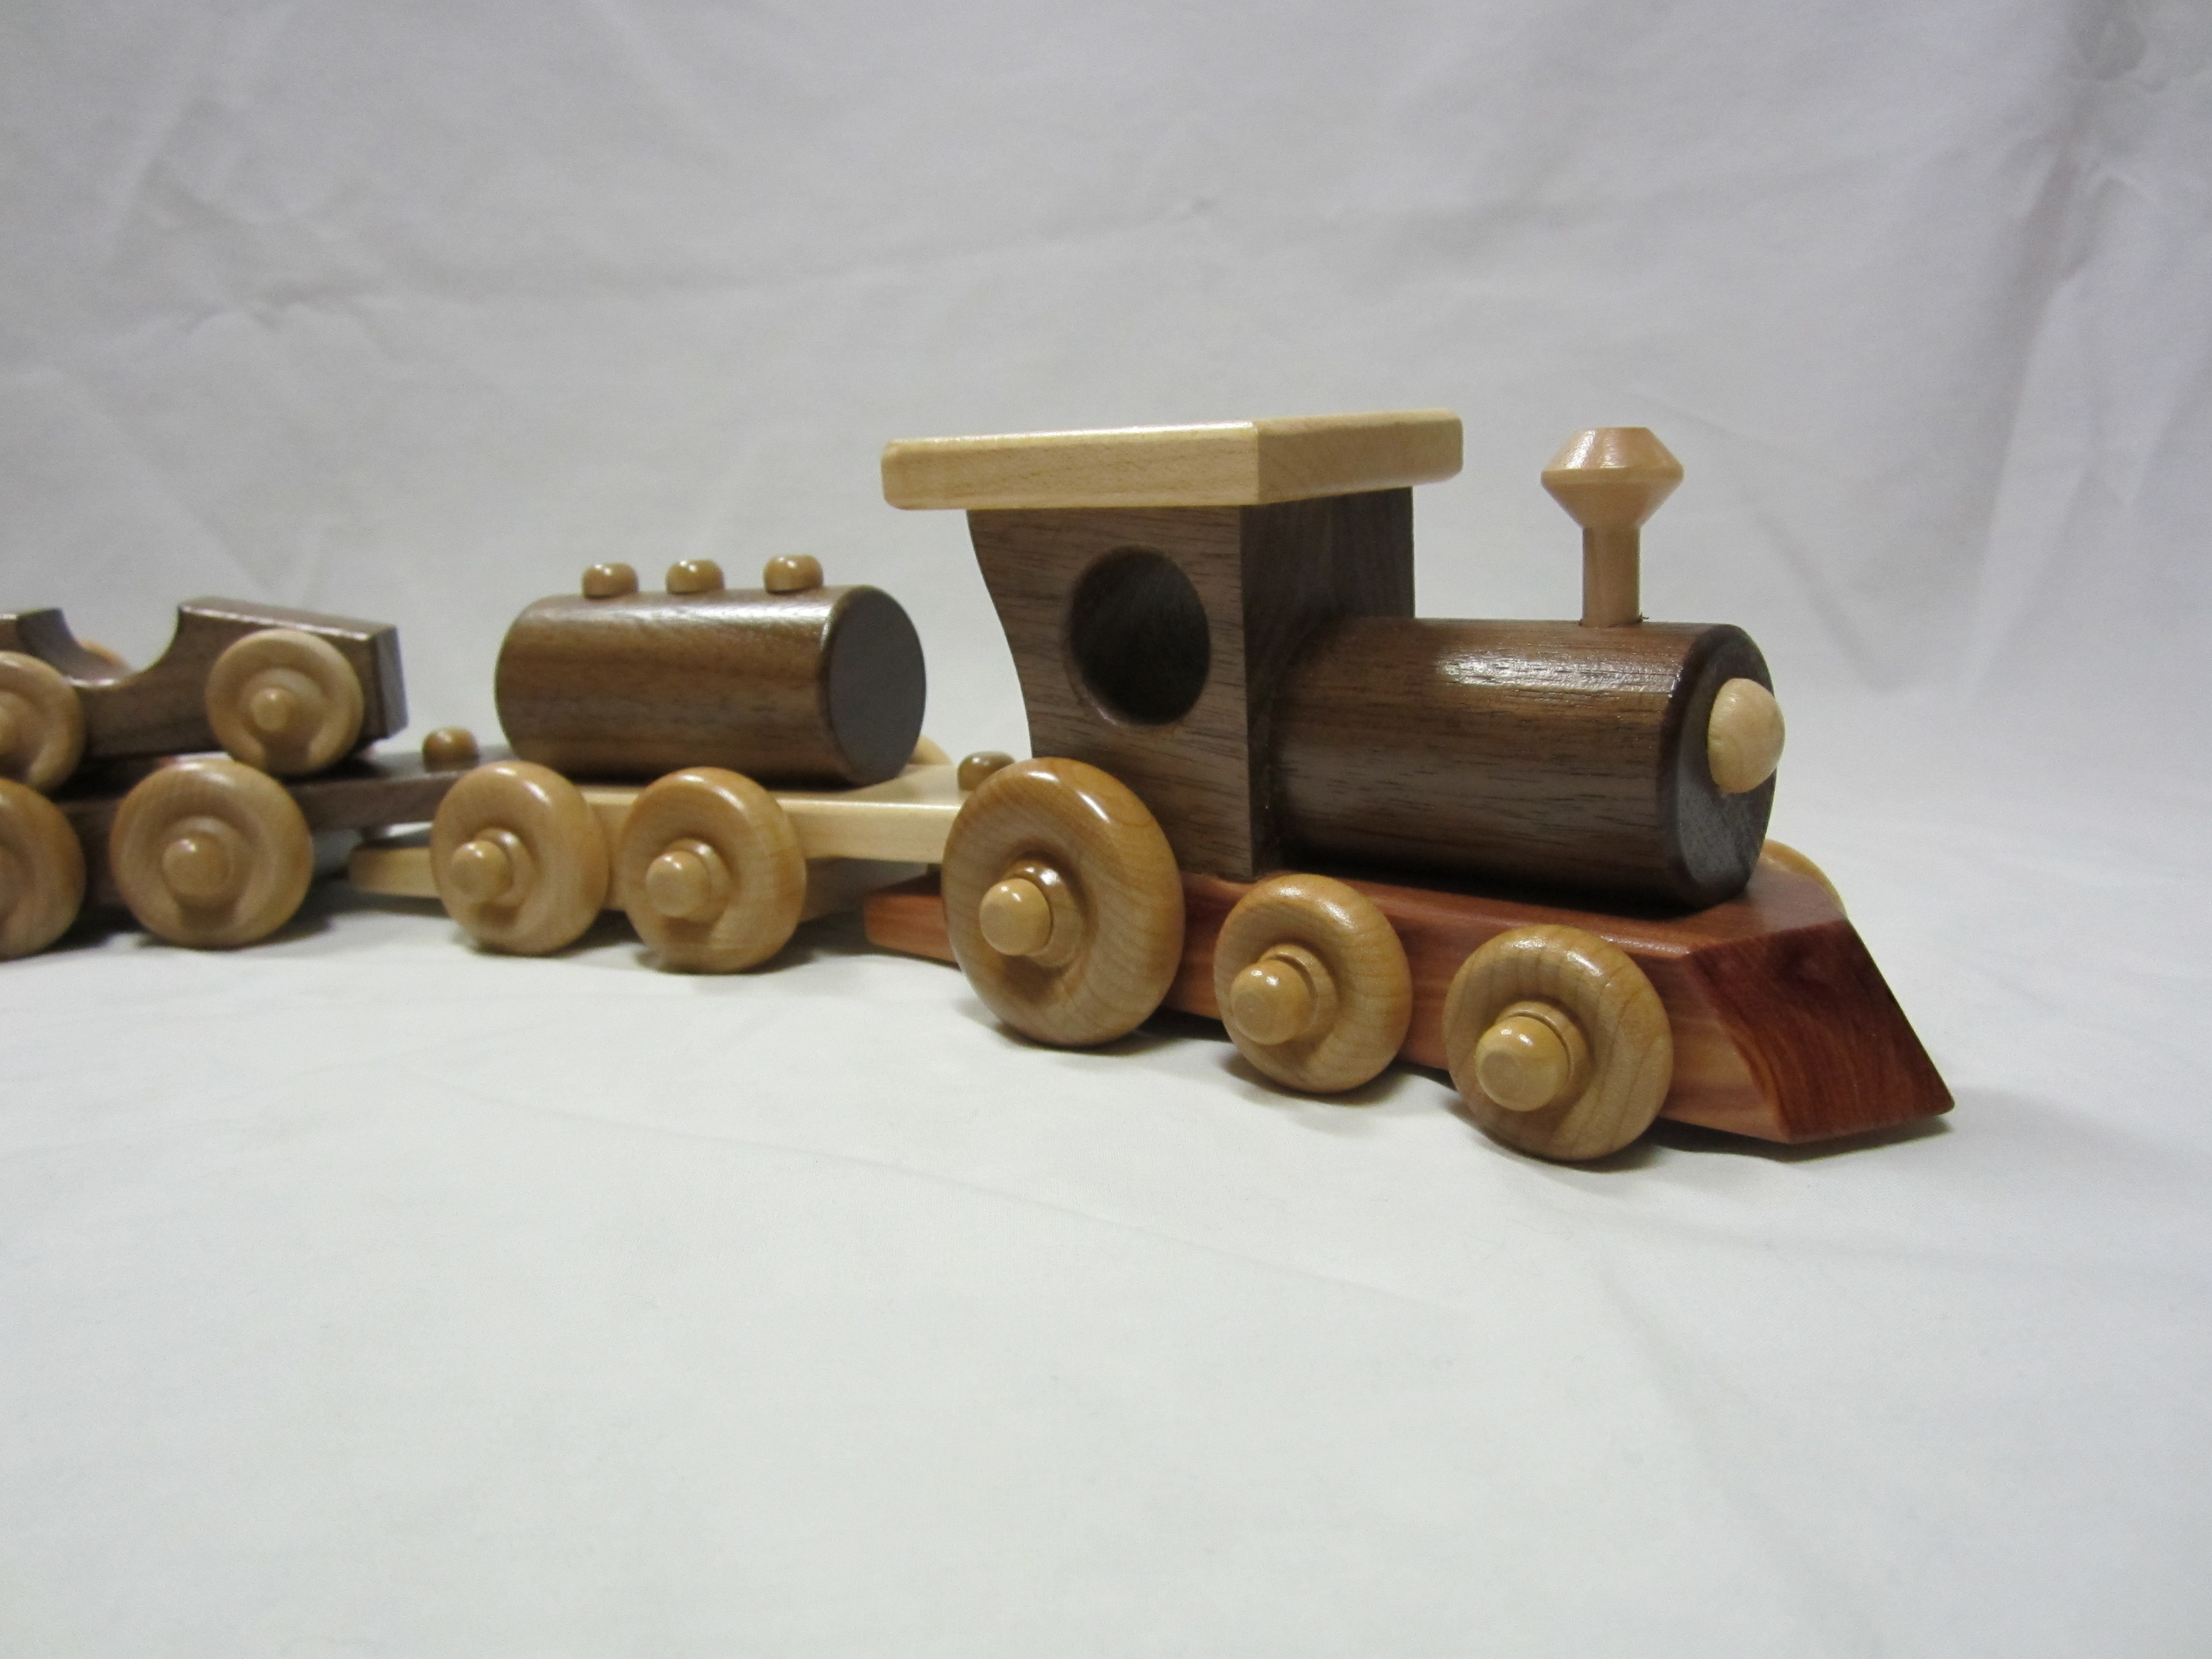 Wooden Toy Trains : Amish handcrafted pc wooden interlocking toy train set